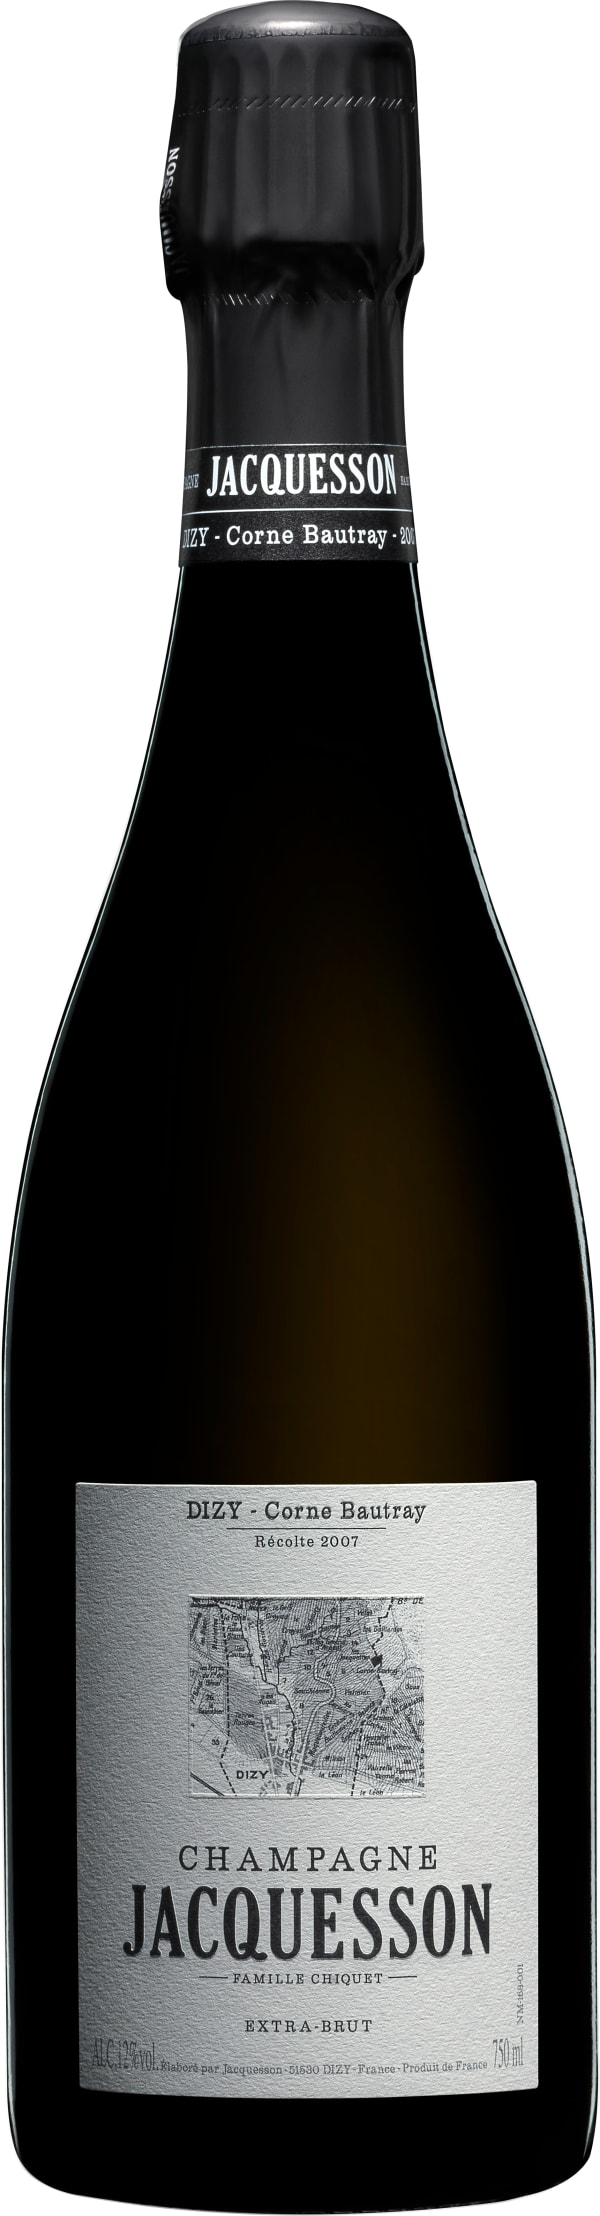 Jacquesson Dizy - Corne Bautray Champagne Extra-Brut 2007